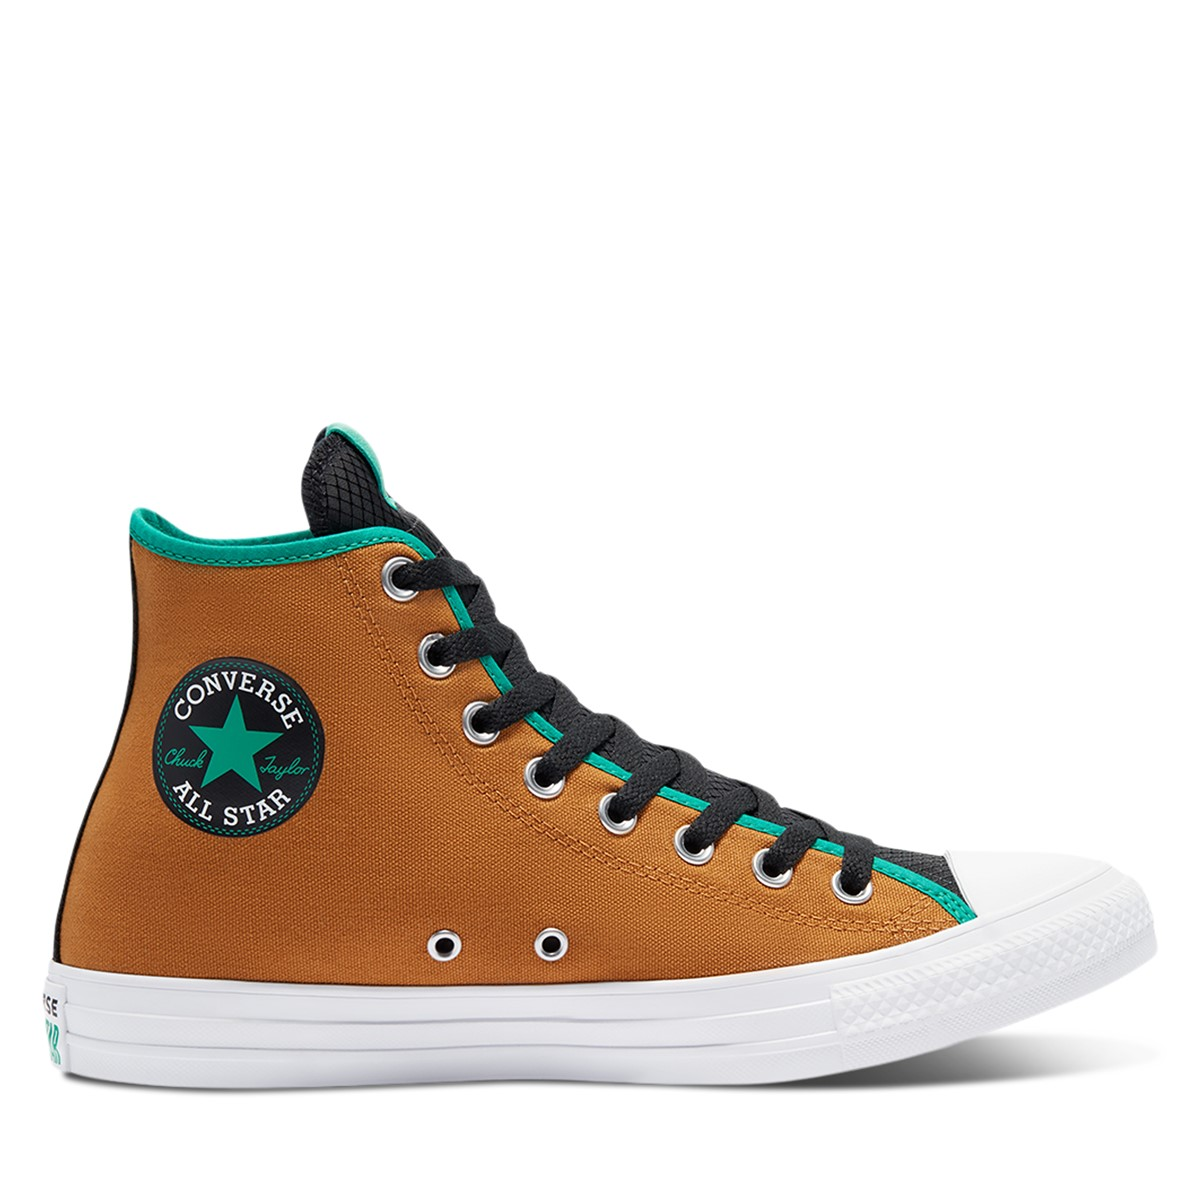 Men's Chuck Taylor All Star Hi Sneakers in Dark Orange